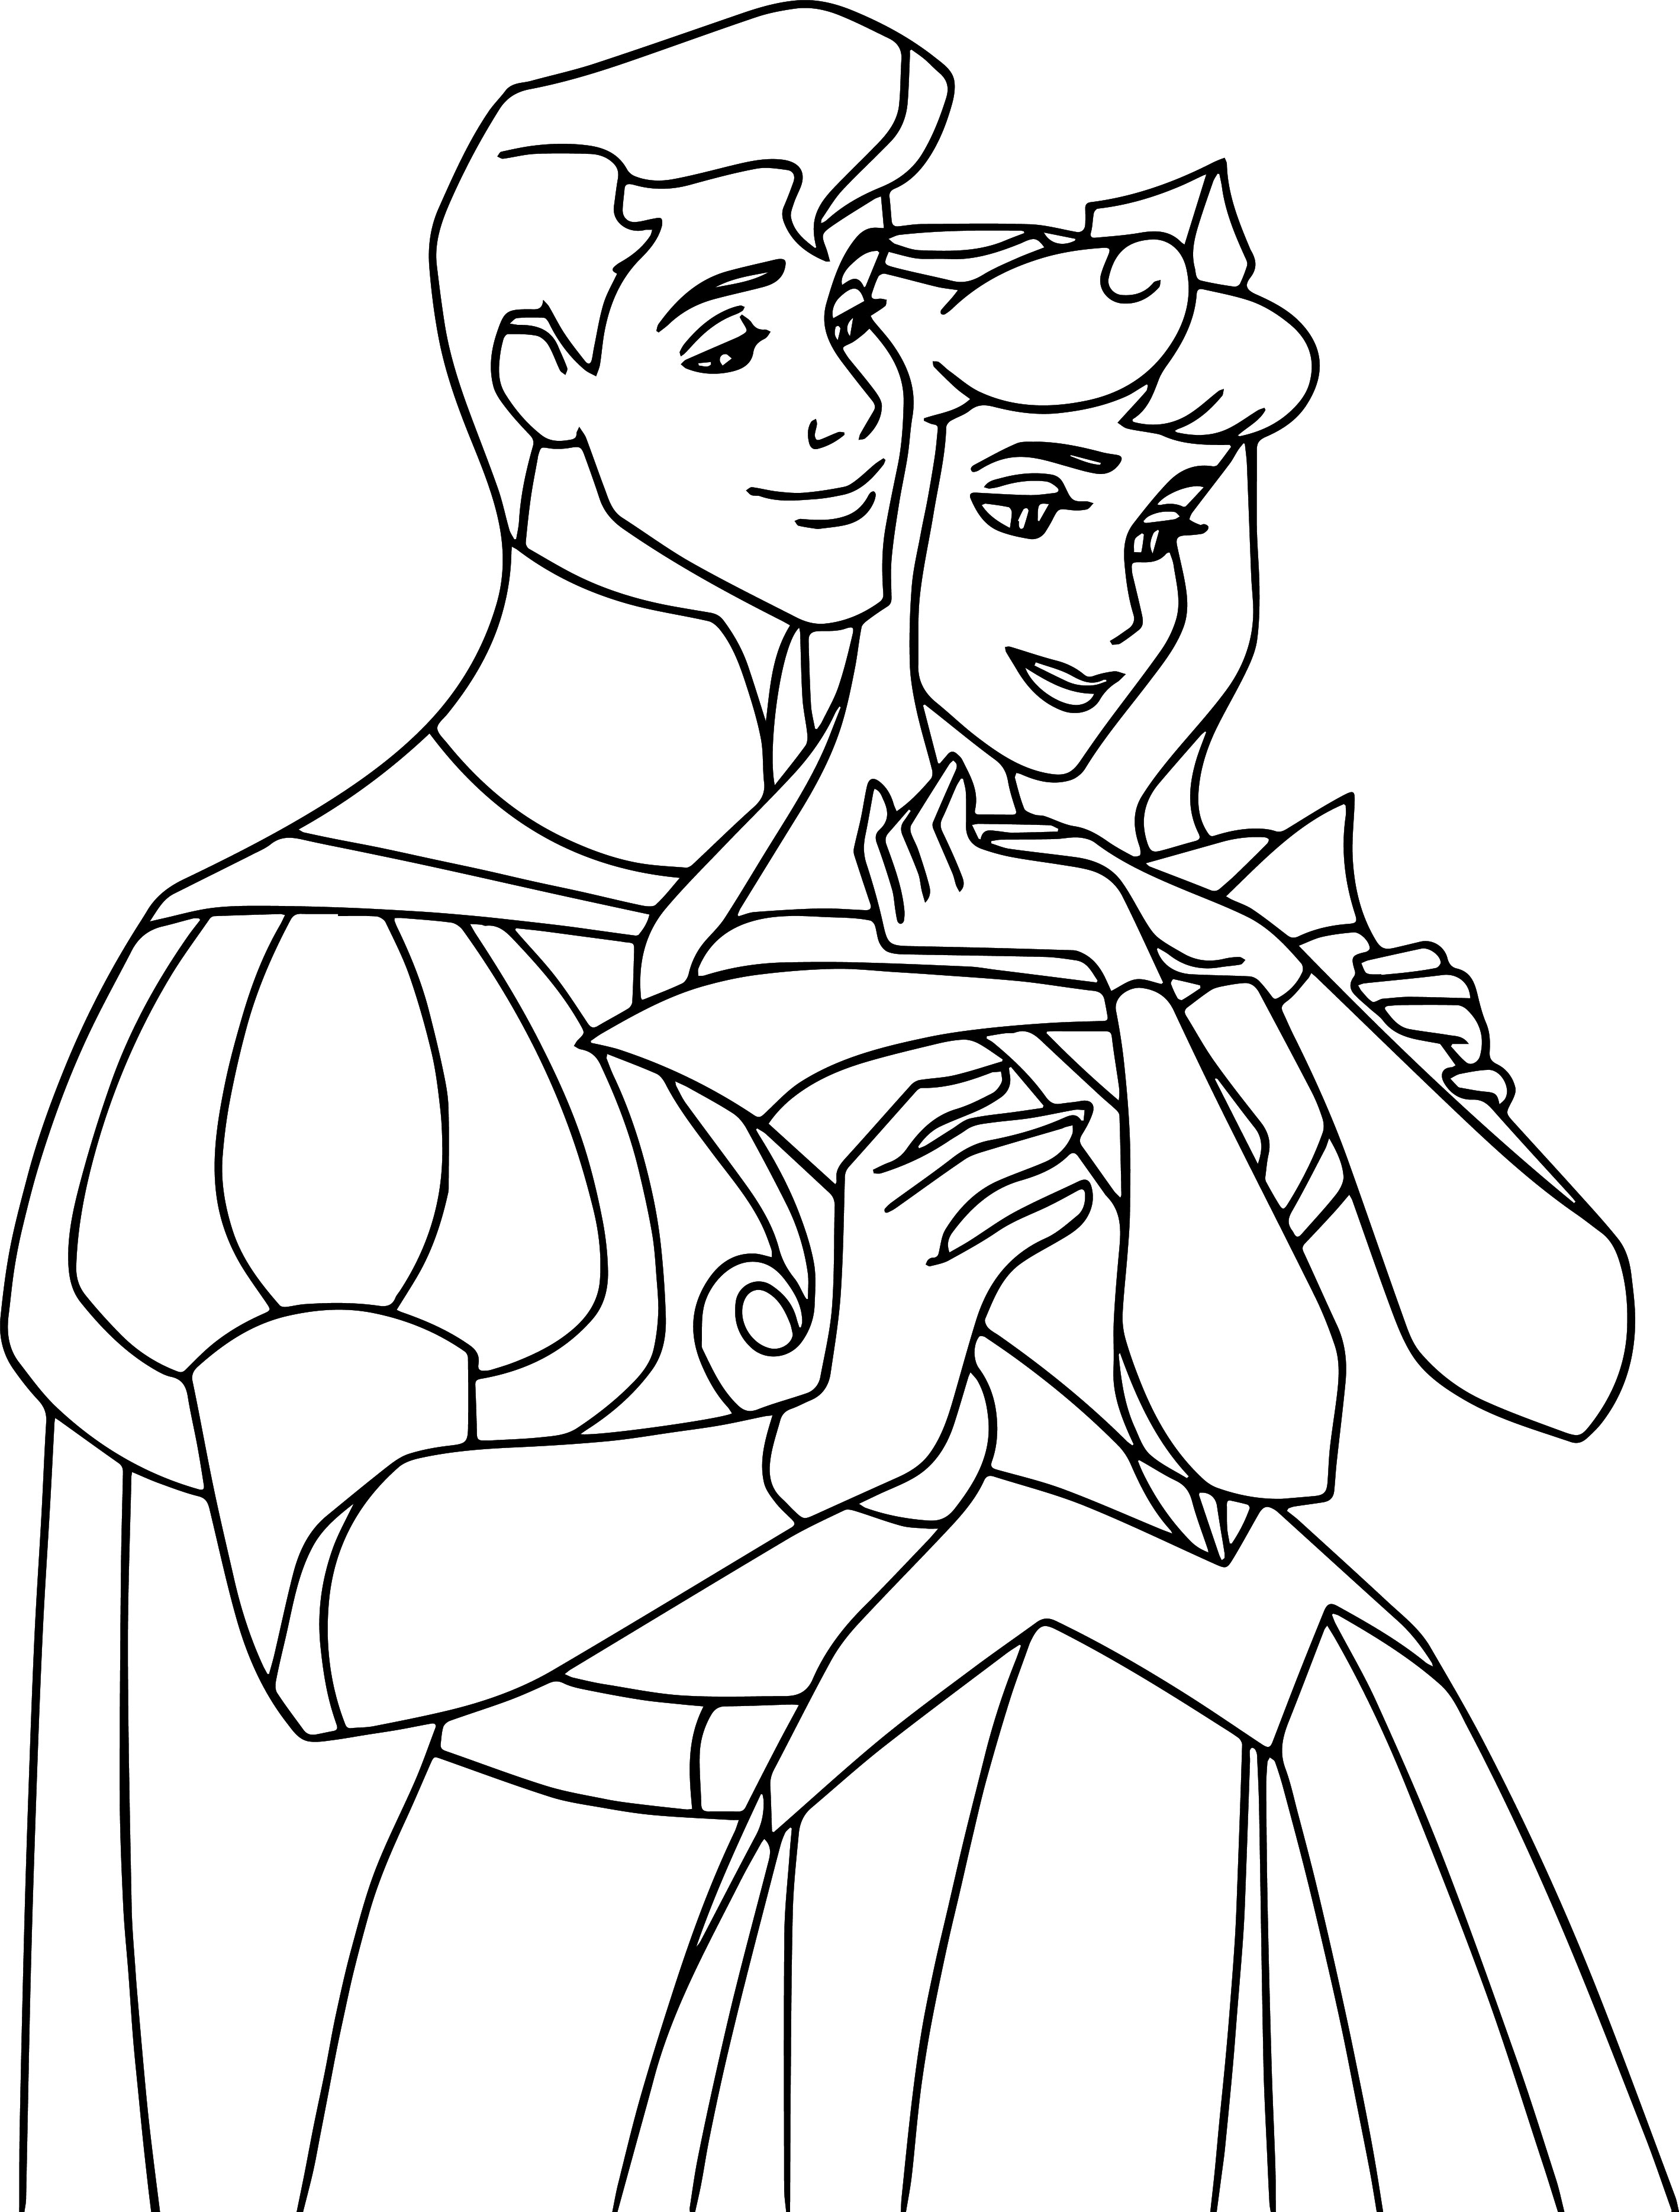 aurora coloring page princess aurora coloring pages to download and print for free aurora page coloring 1 1